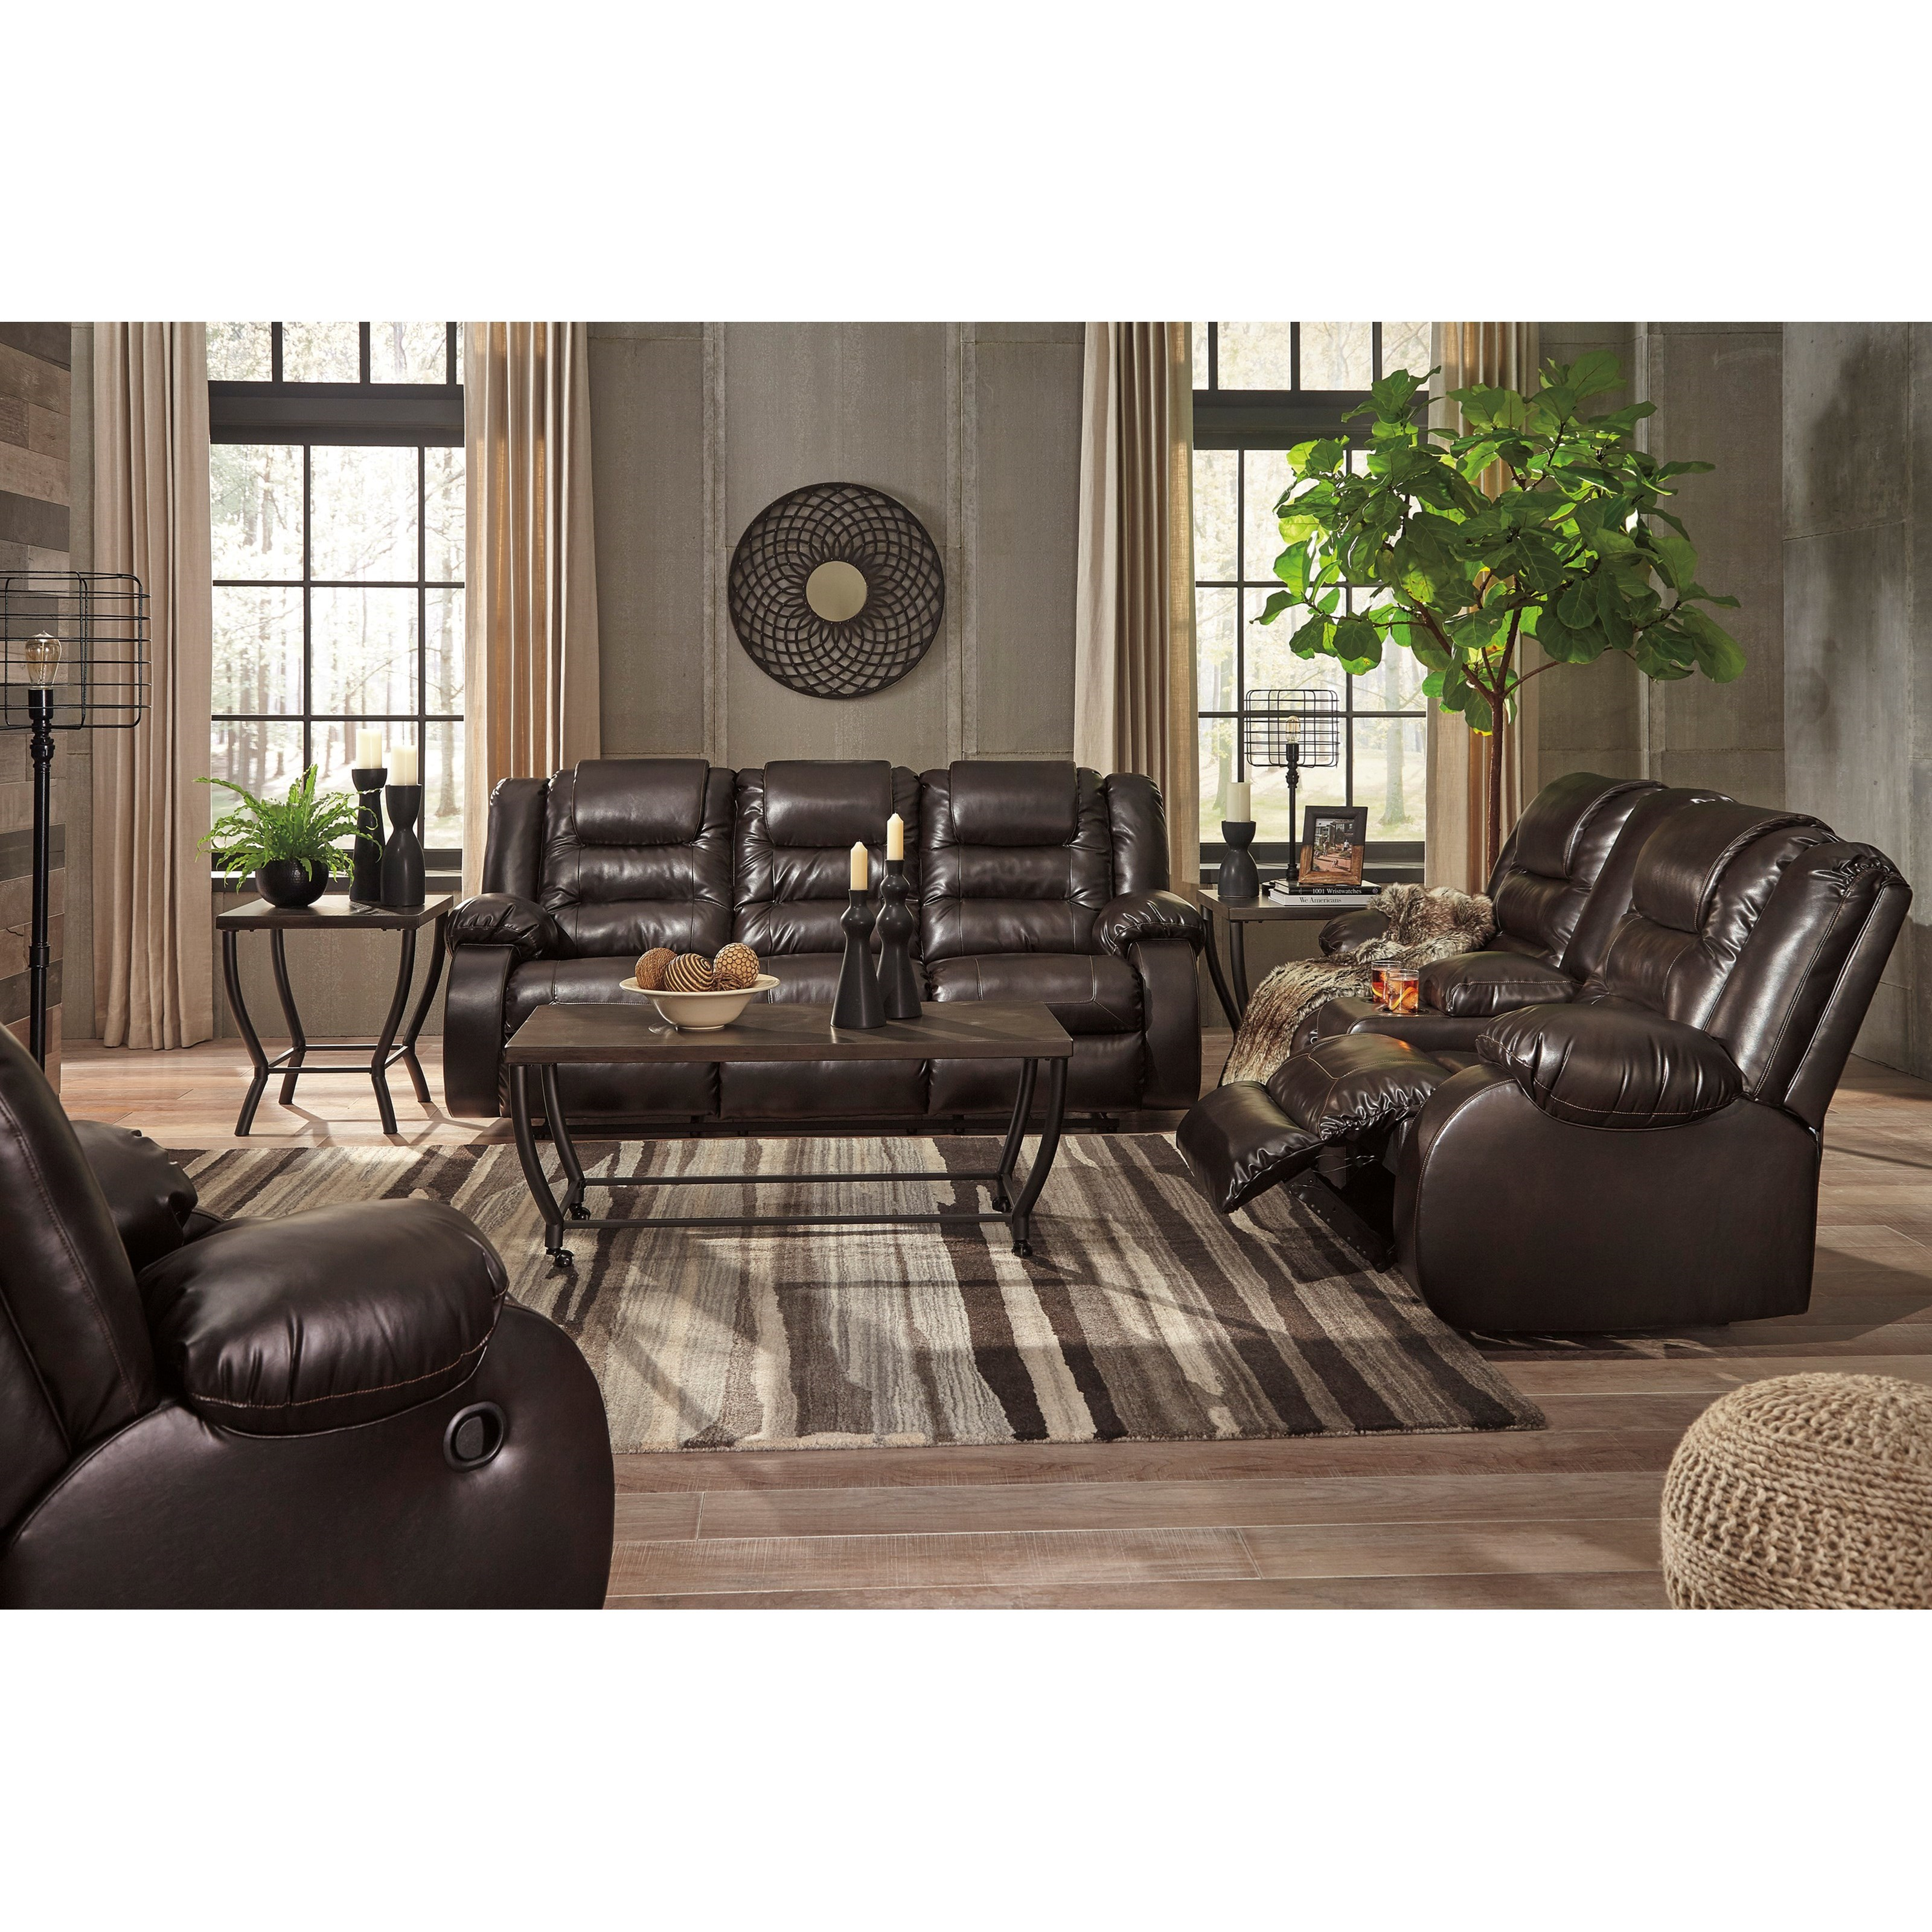 Signature design by ashley vacherie reclining living room for Living room furniture groups